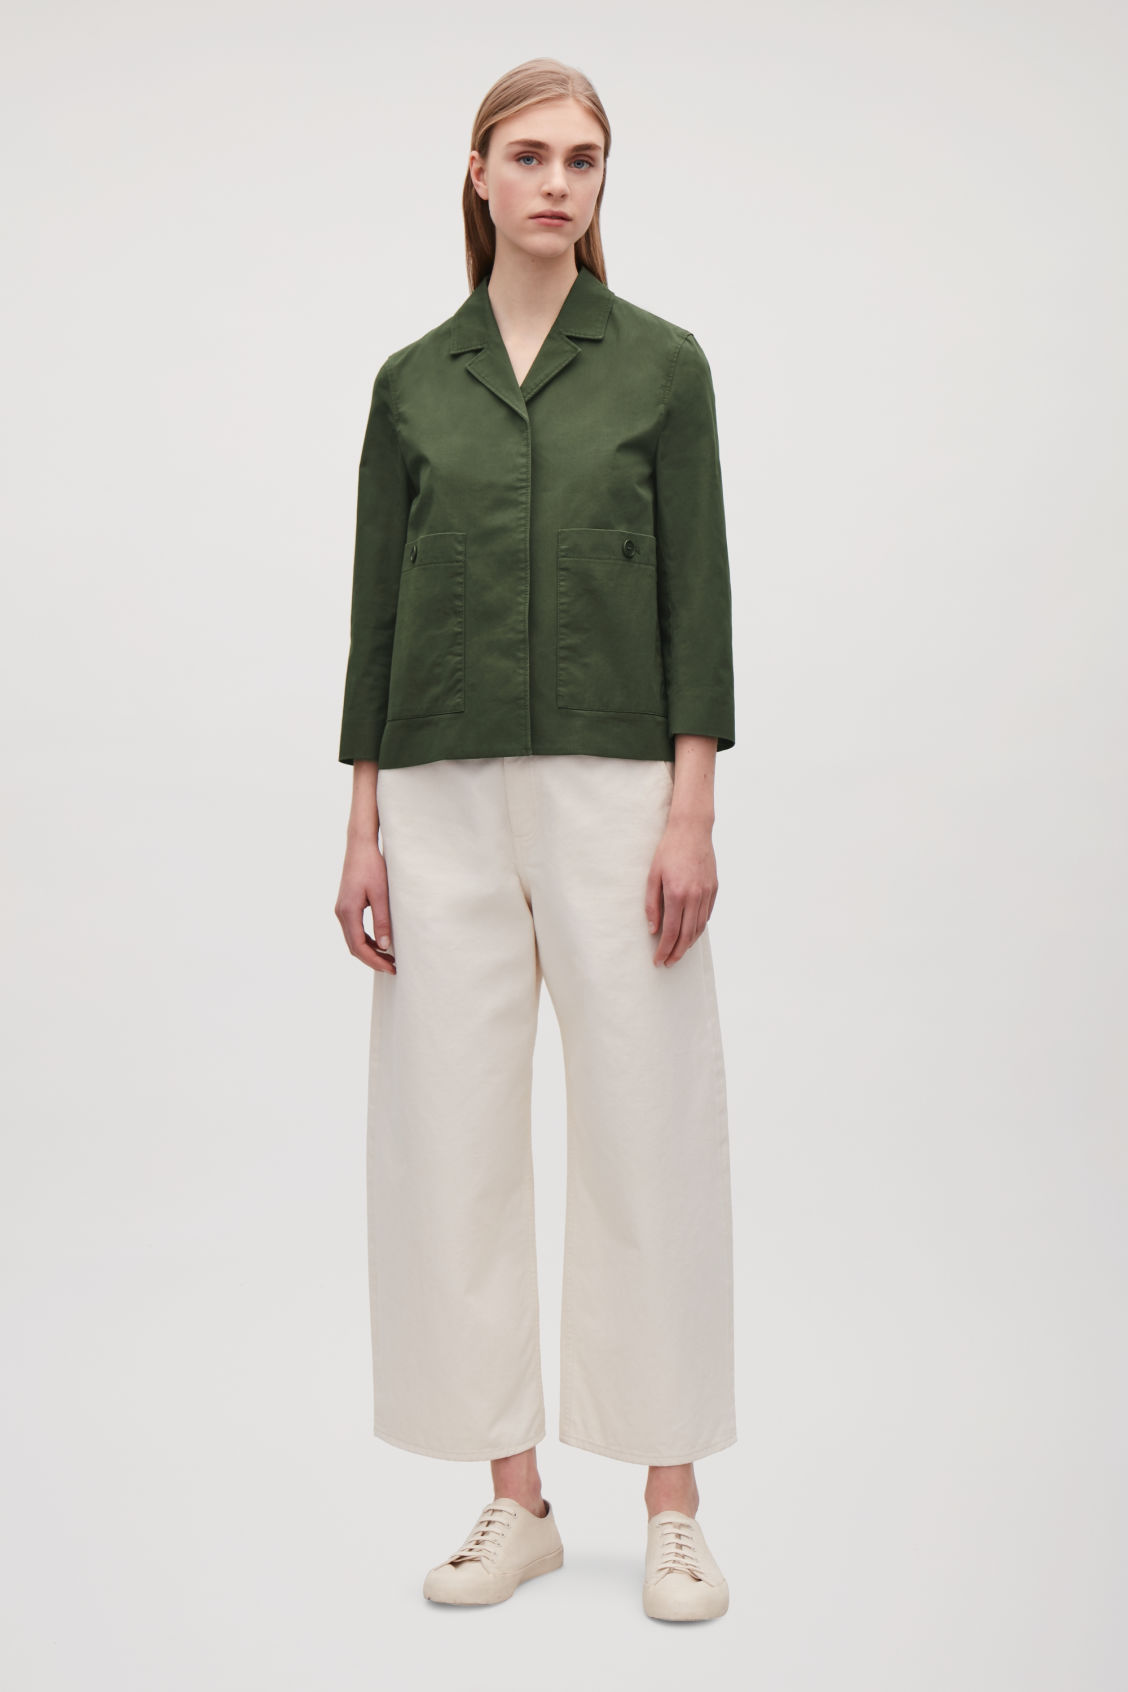 0752dca2828 Shoptagr | Cropped Jacket With Pockets by Cos